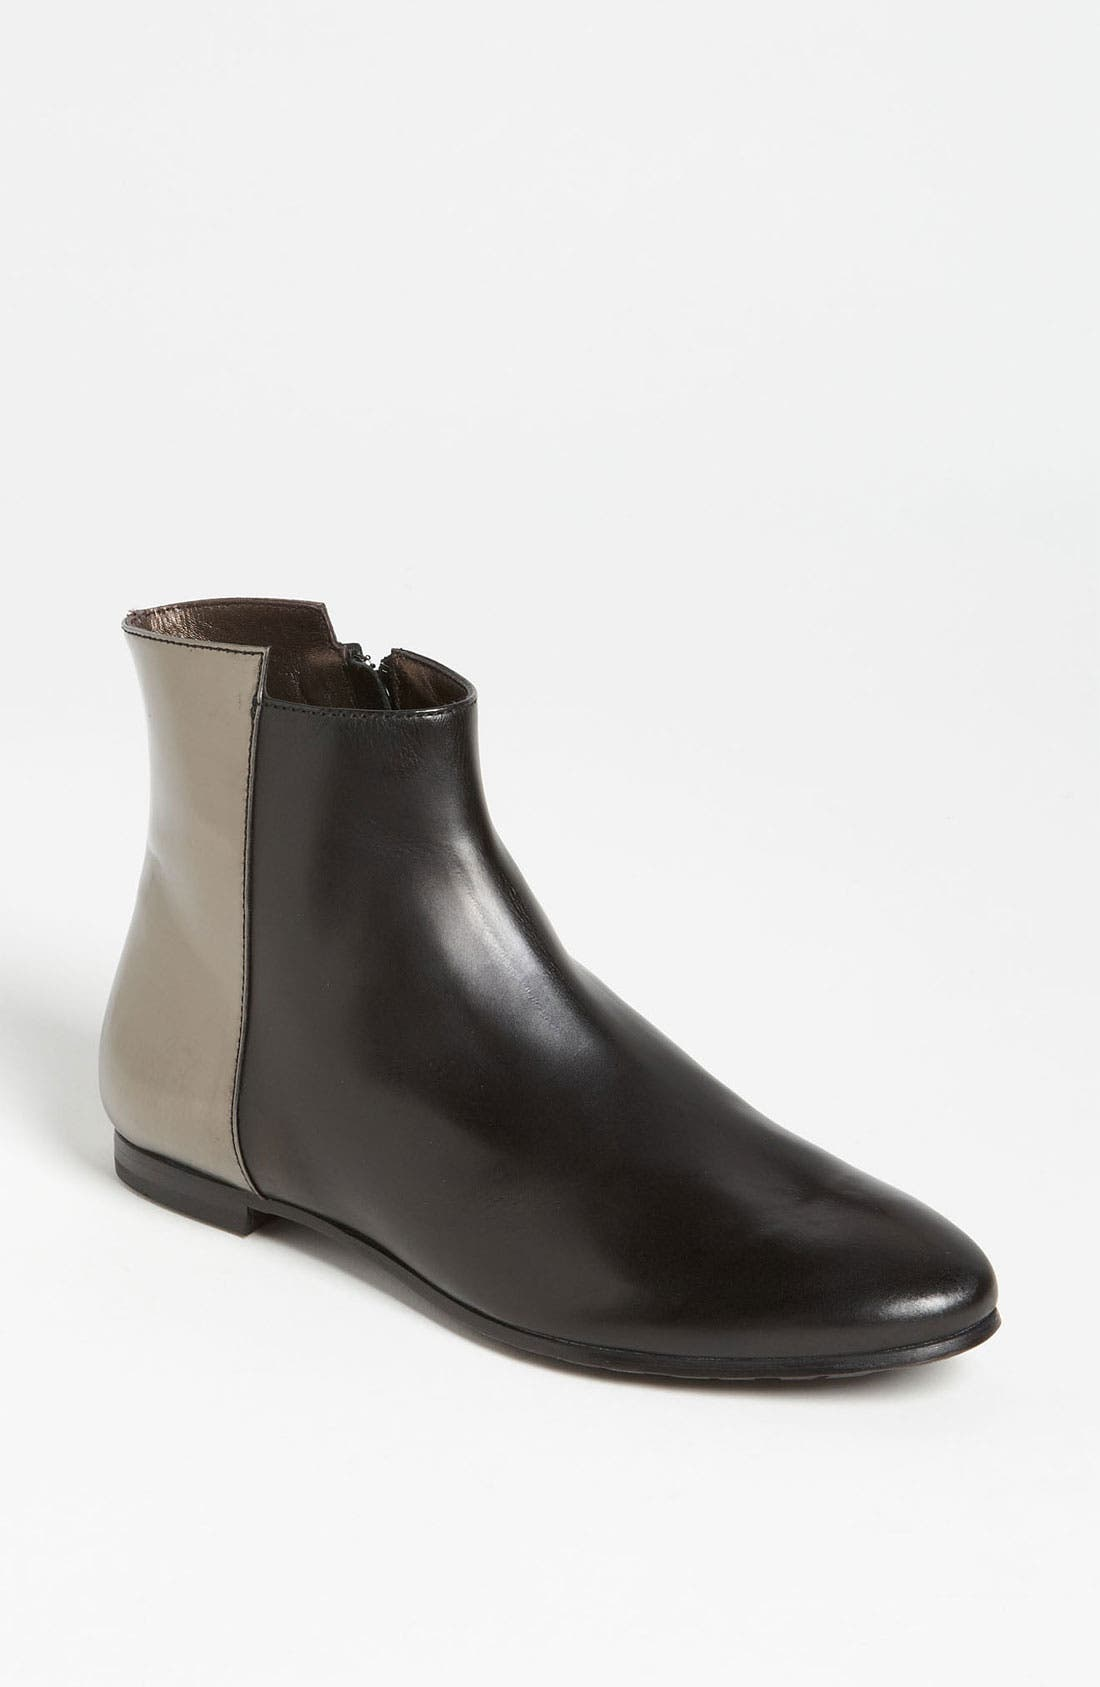 Alternate Image 1 Selected - Attilio Giusti Leombruni Two Tone Bootie